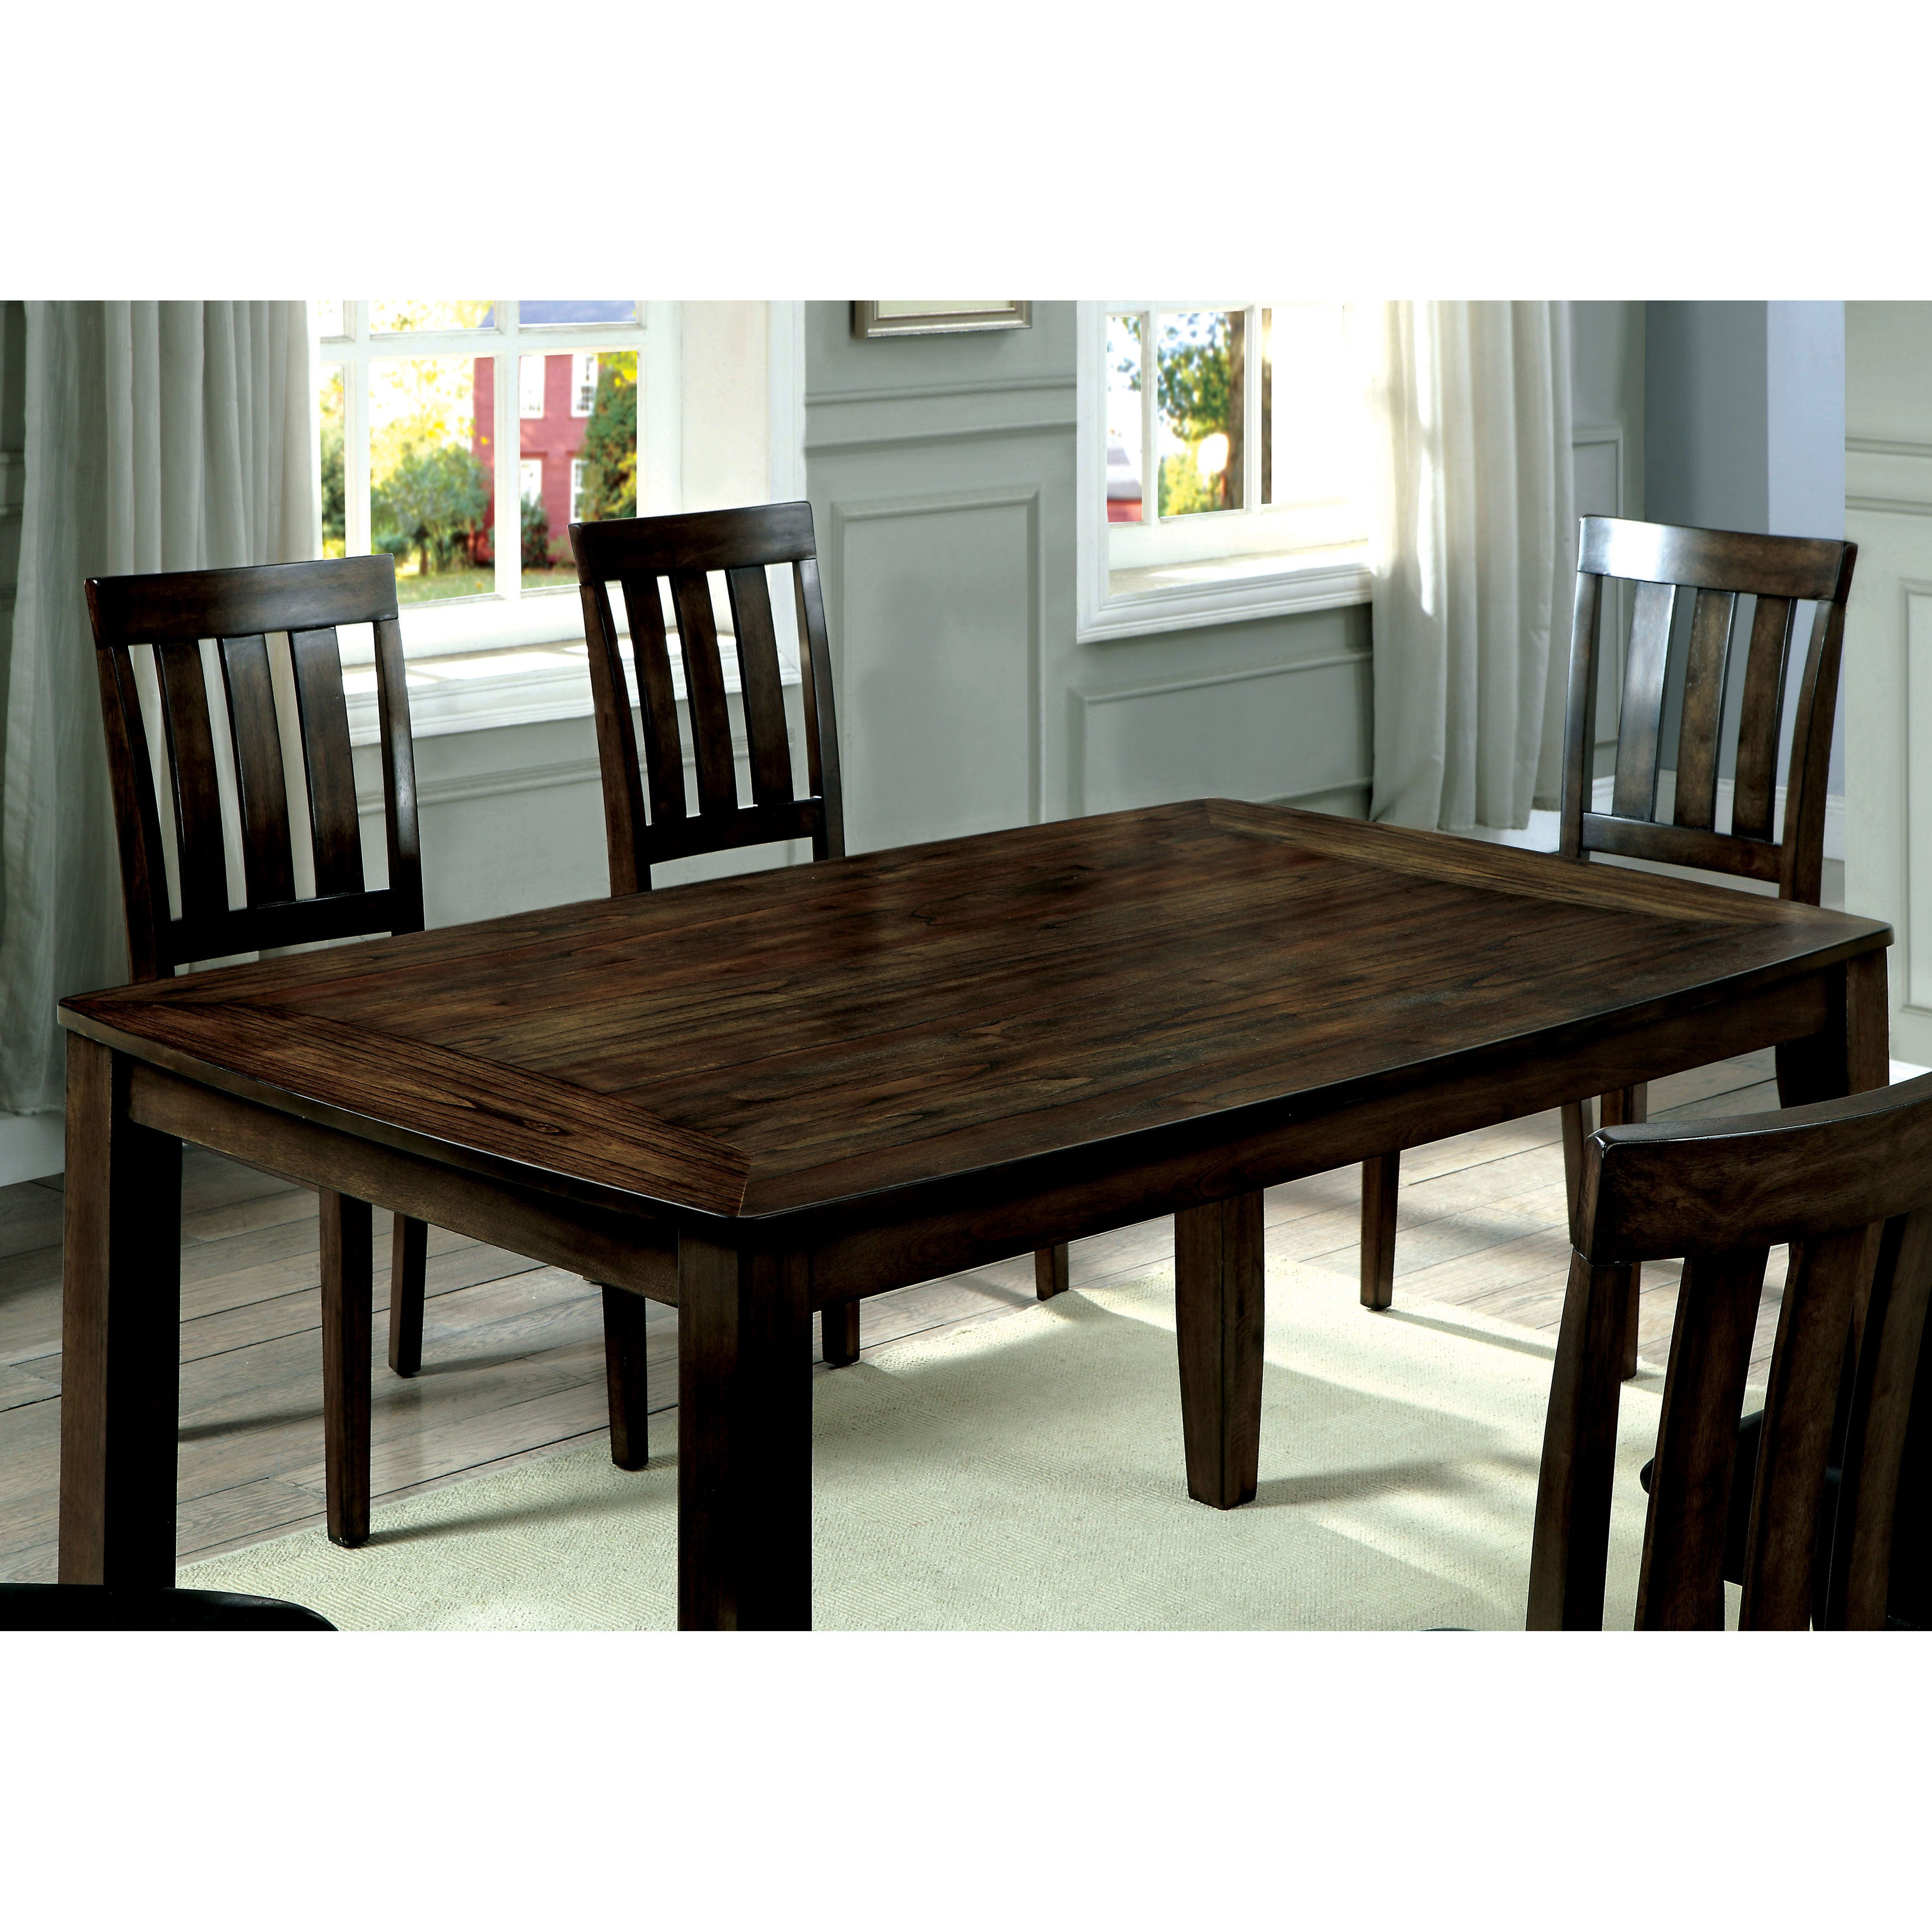 Shop Furniture Of America Merlein Rustic 7 Piece Dark Oak Dining Set   Free  Shipping Today   Overstock.com   18751093